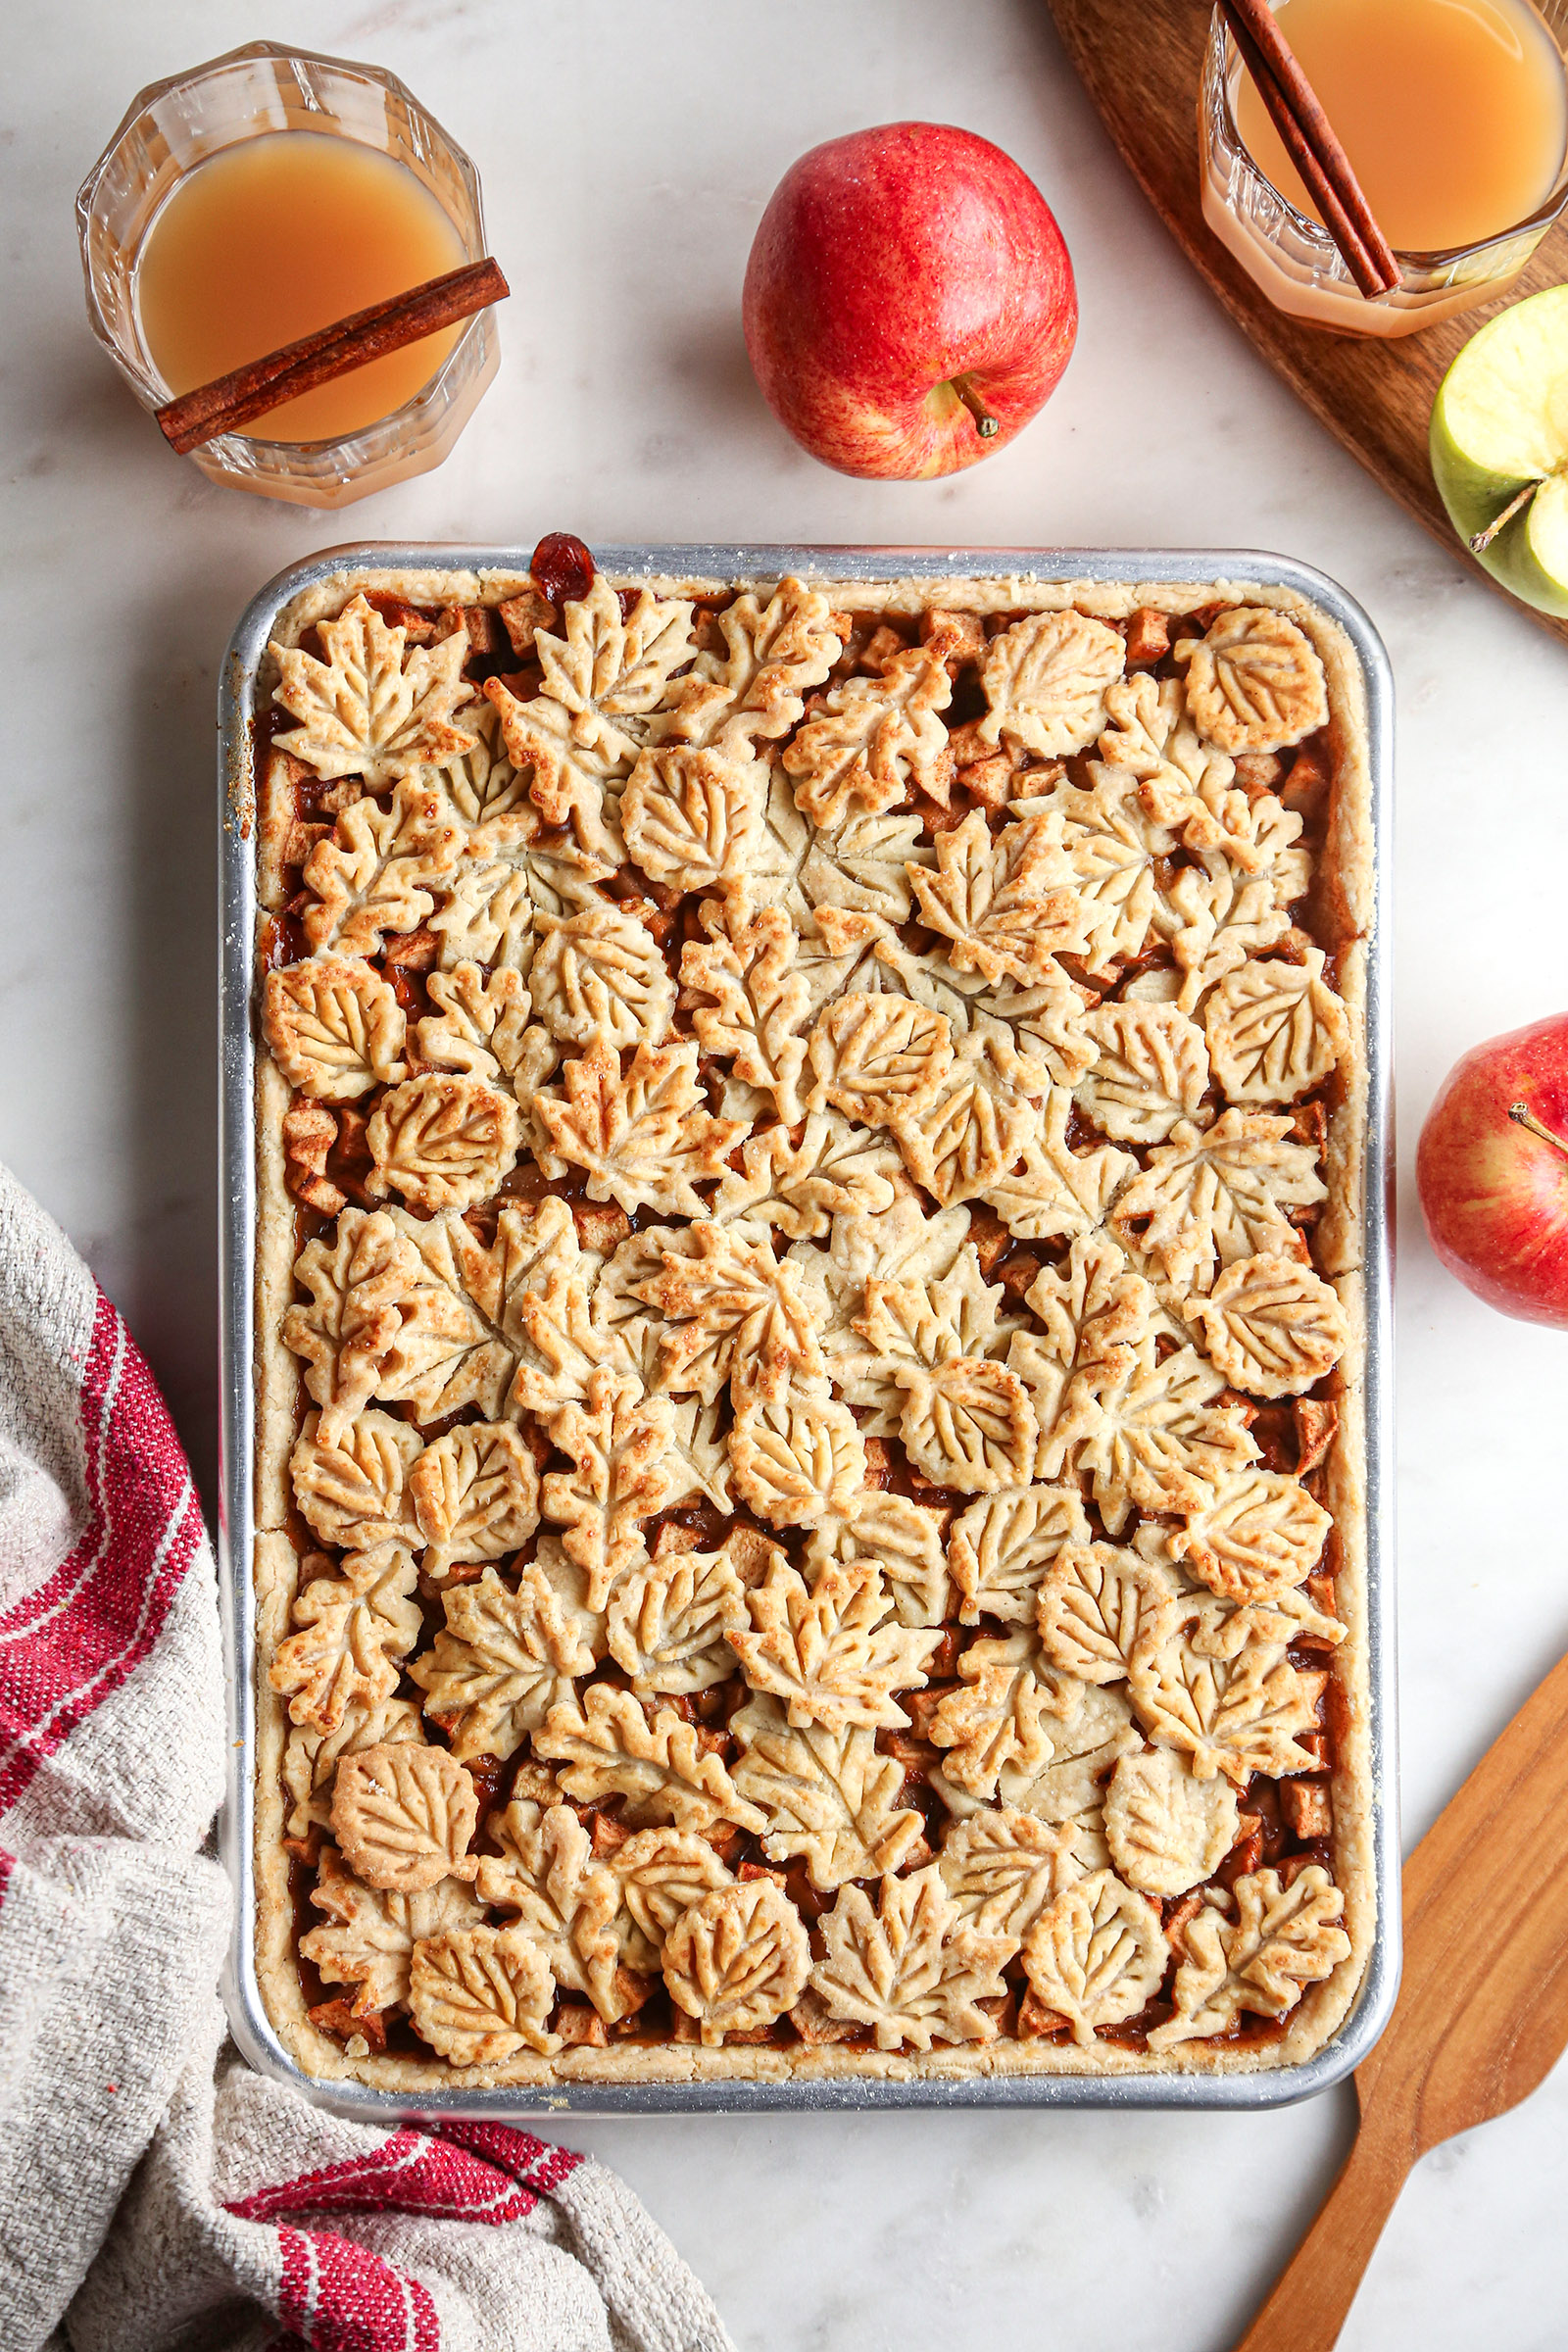 Apple Slab Pie | Vegan friendly with gluten free and refined sugar free options